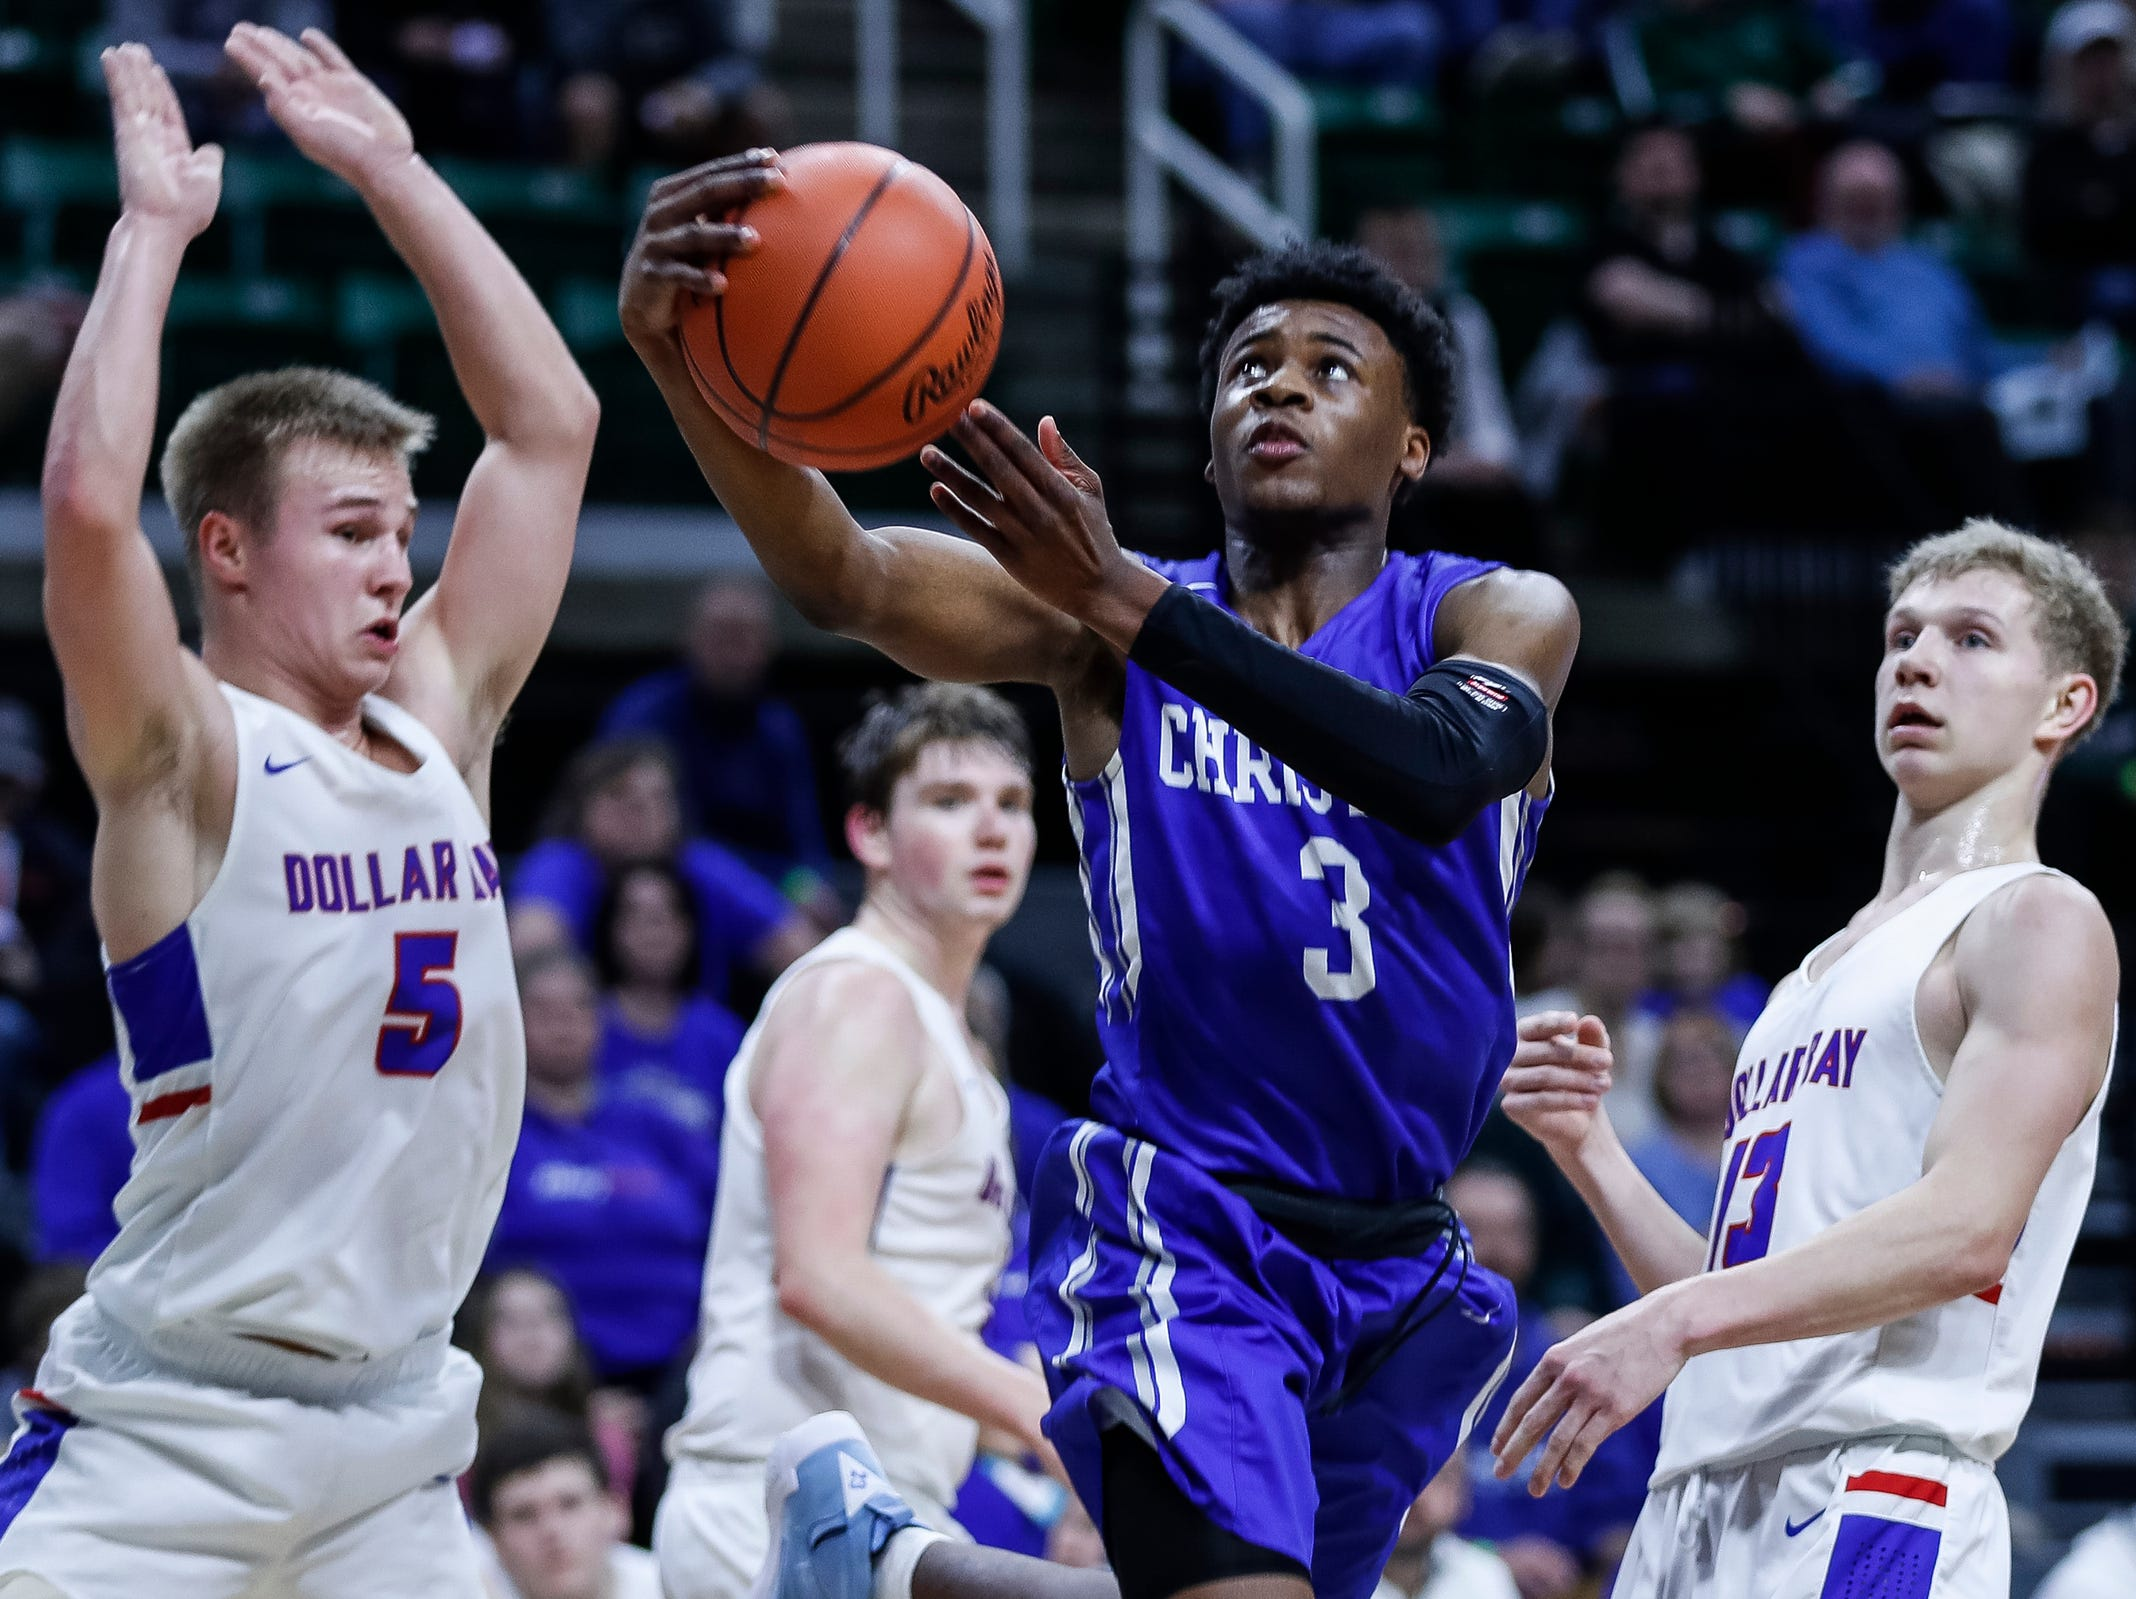 Southfield Christian's Da'Jion Humphrey (3) makes a layup against Dollar Bay's Brendan LeClaire (5) during the first half of MHSAA Division 4 semifinal at the Breslin Center in East Lansing, Thursday, March 14, 2019.